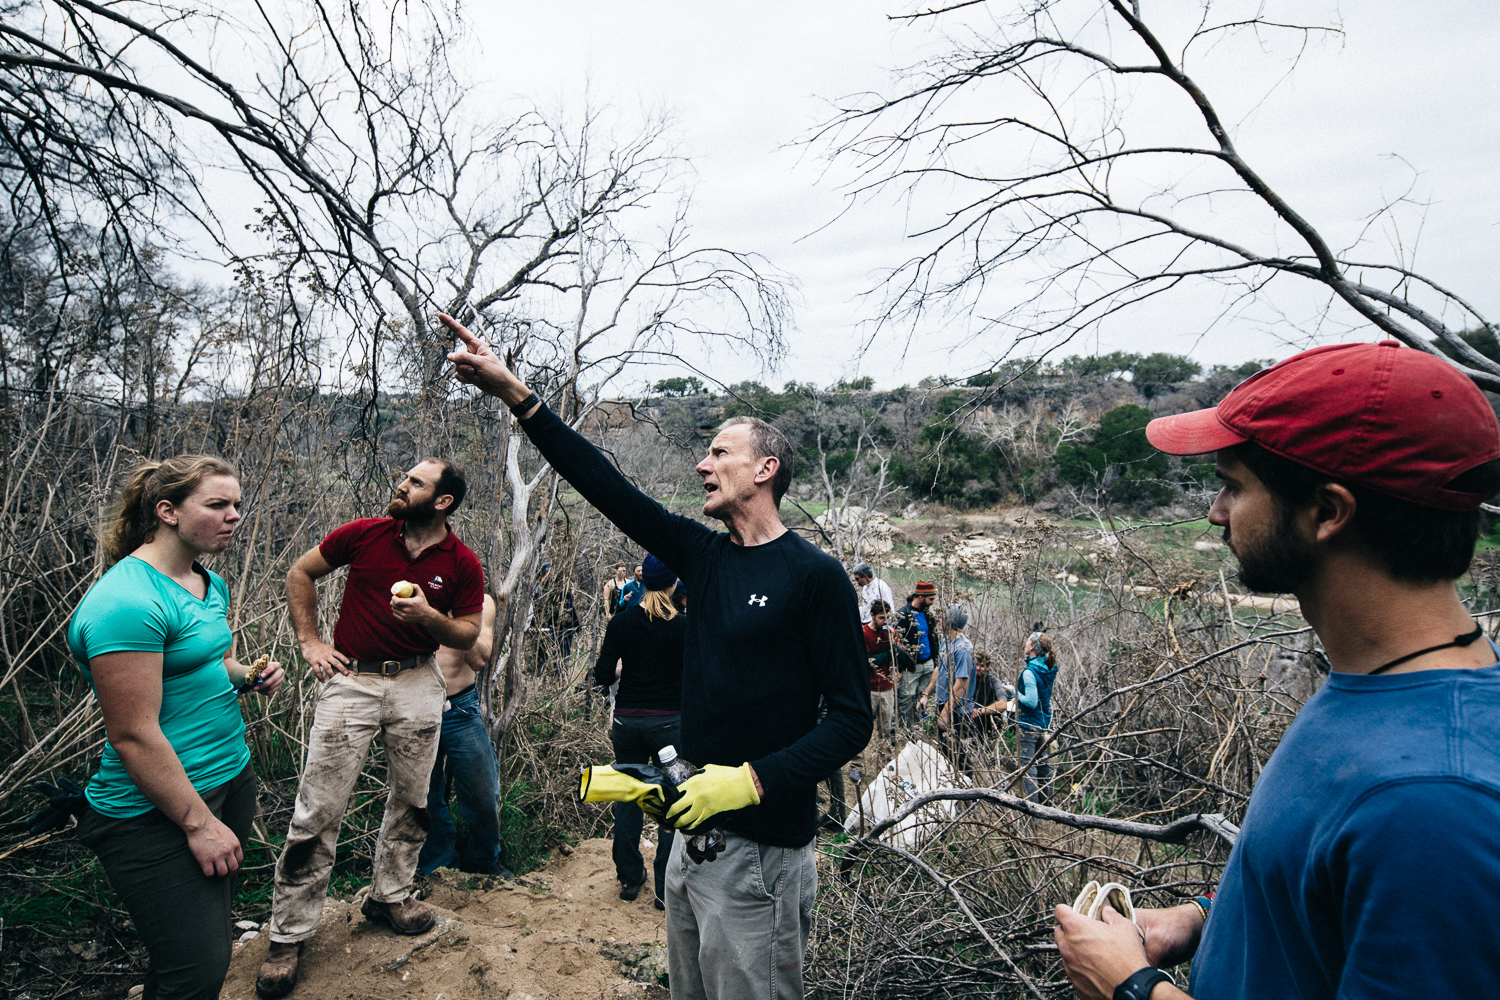 """Tommy Blackwell and the rest of the Central Texas Mountaineer Volunteer group doing clean up work on, """"It's My Park Day,"""" at Reimer's Ranch, Texas."""